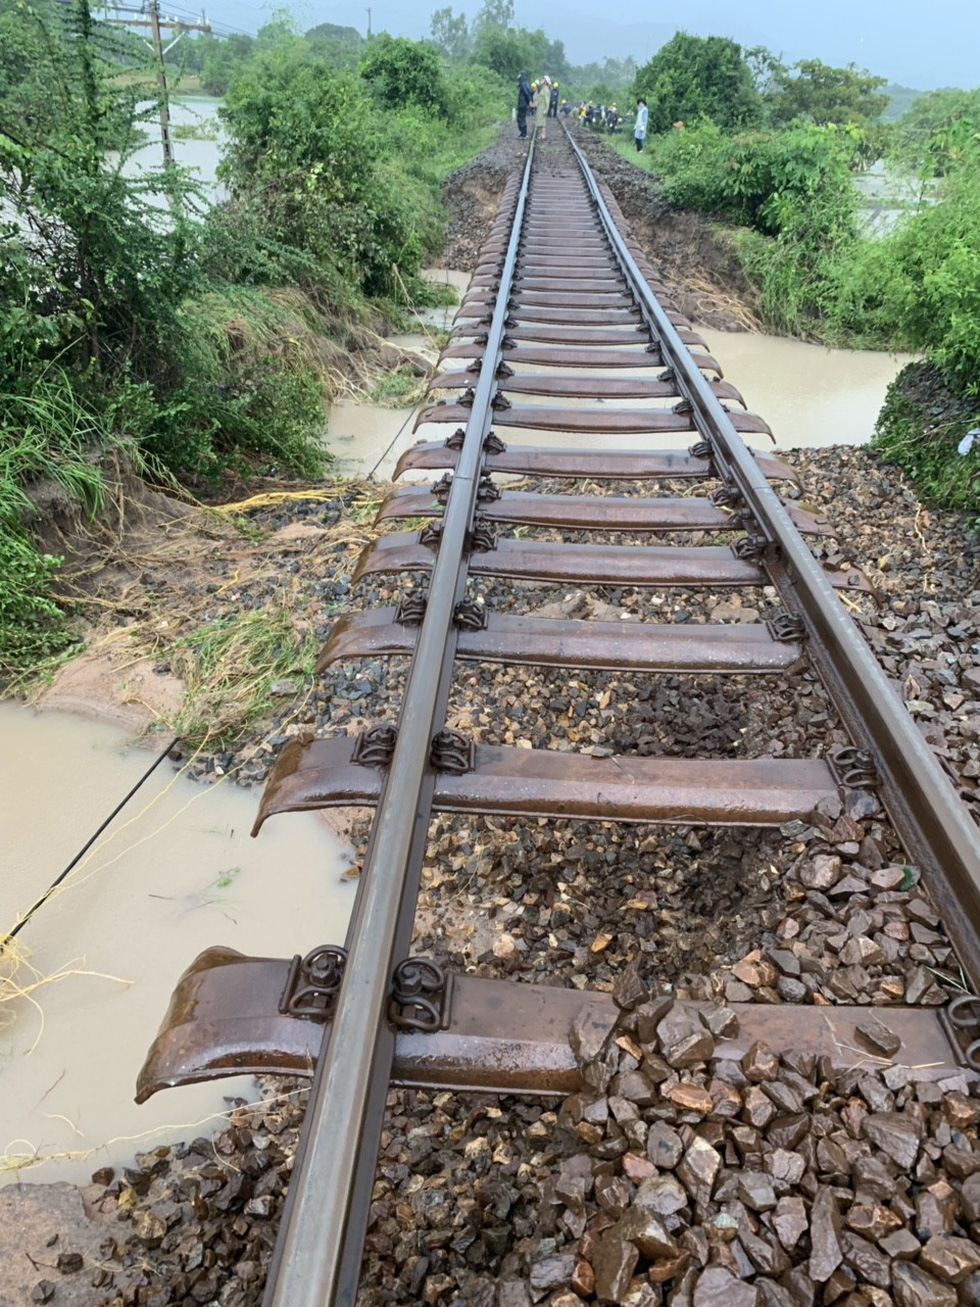 Floodwater washes away soil underneath the railway. Photo: Tuoi Tre